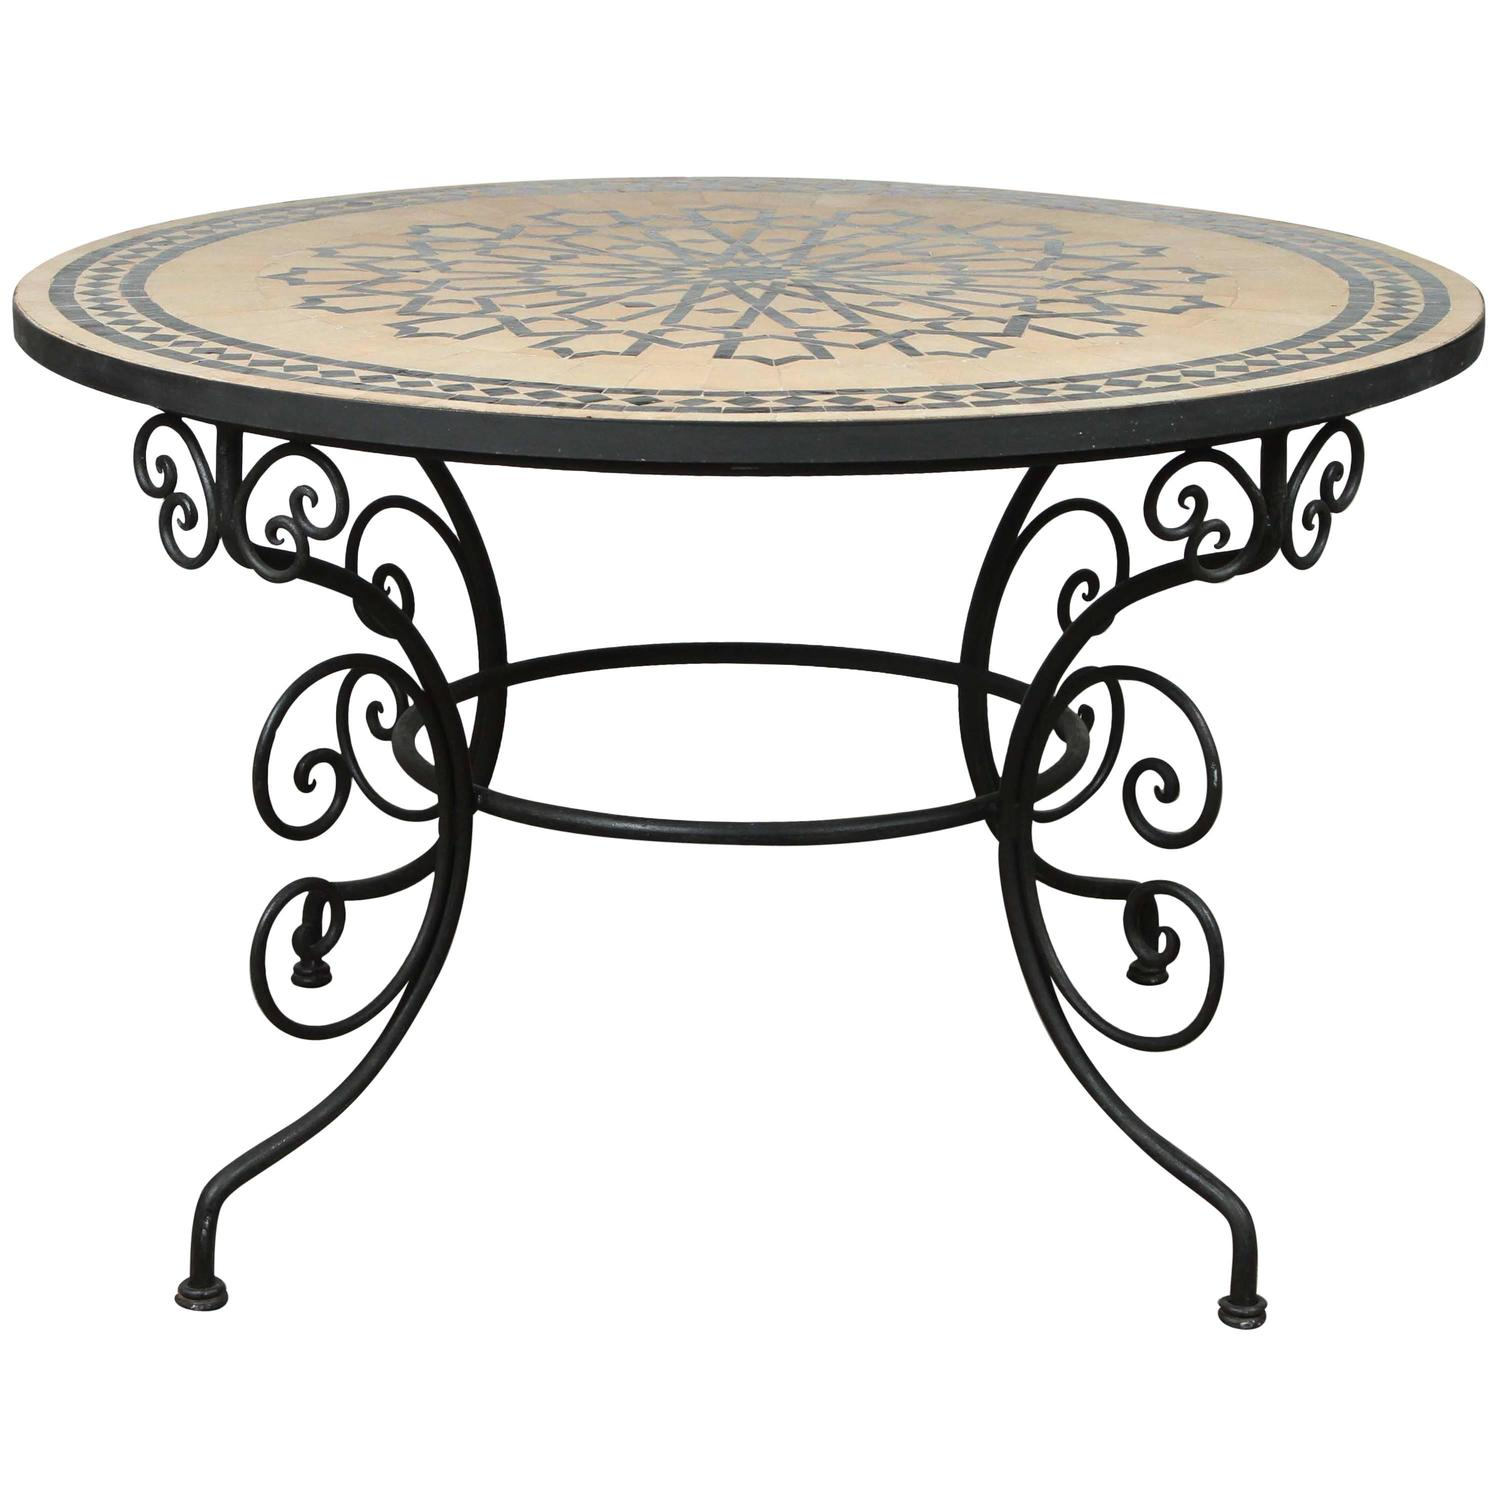 Fresh Moroccan Outdoor Round Mosaic Tile Dining Table on Iron Base 47 in  NT05